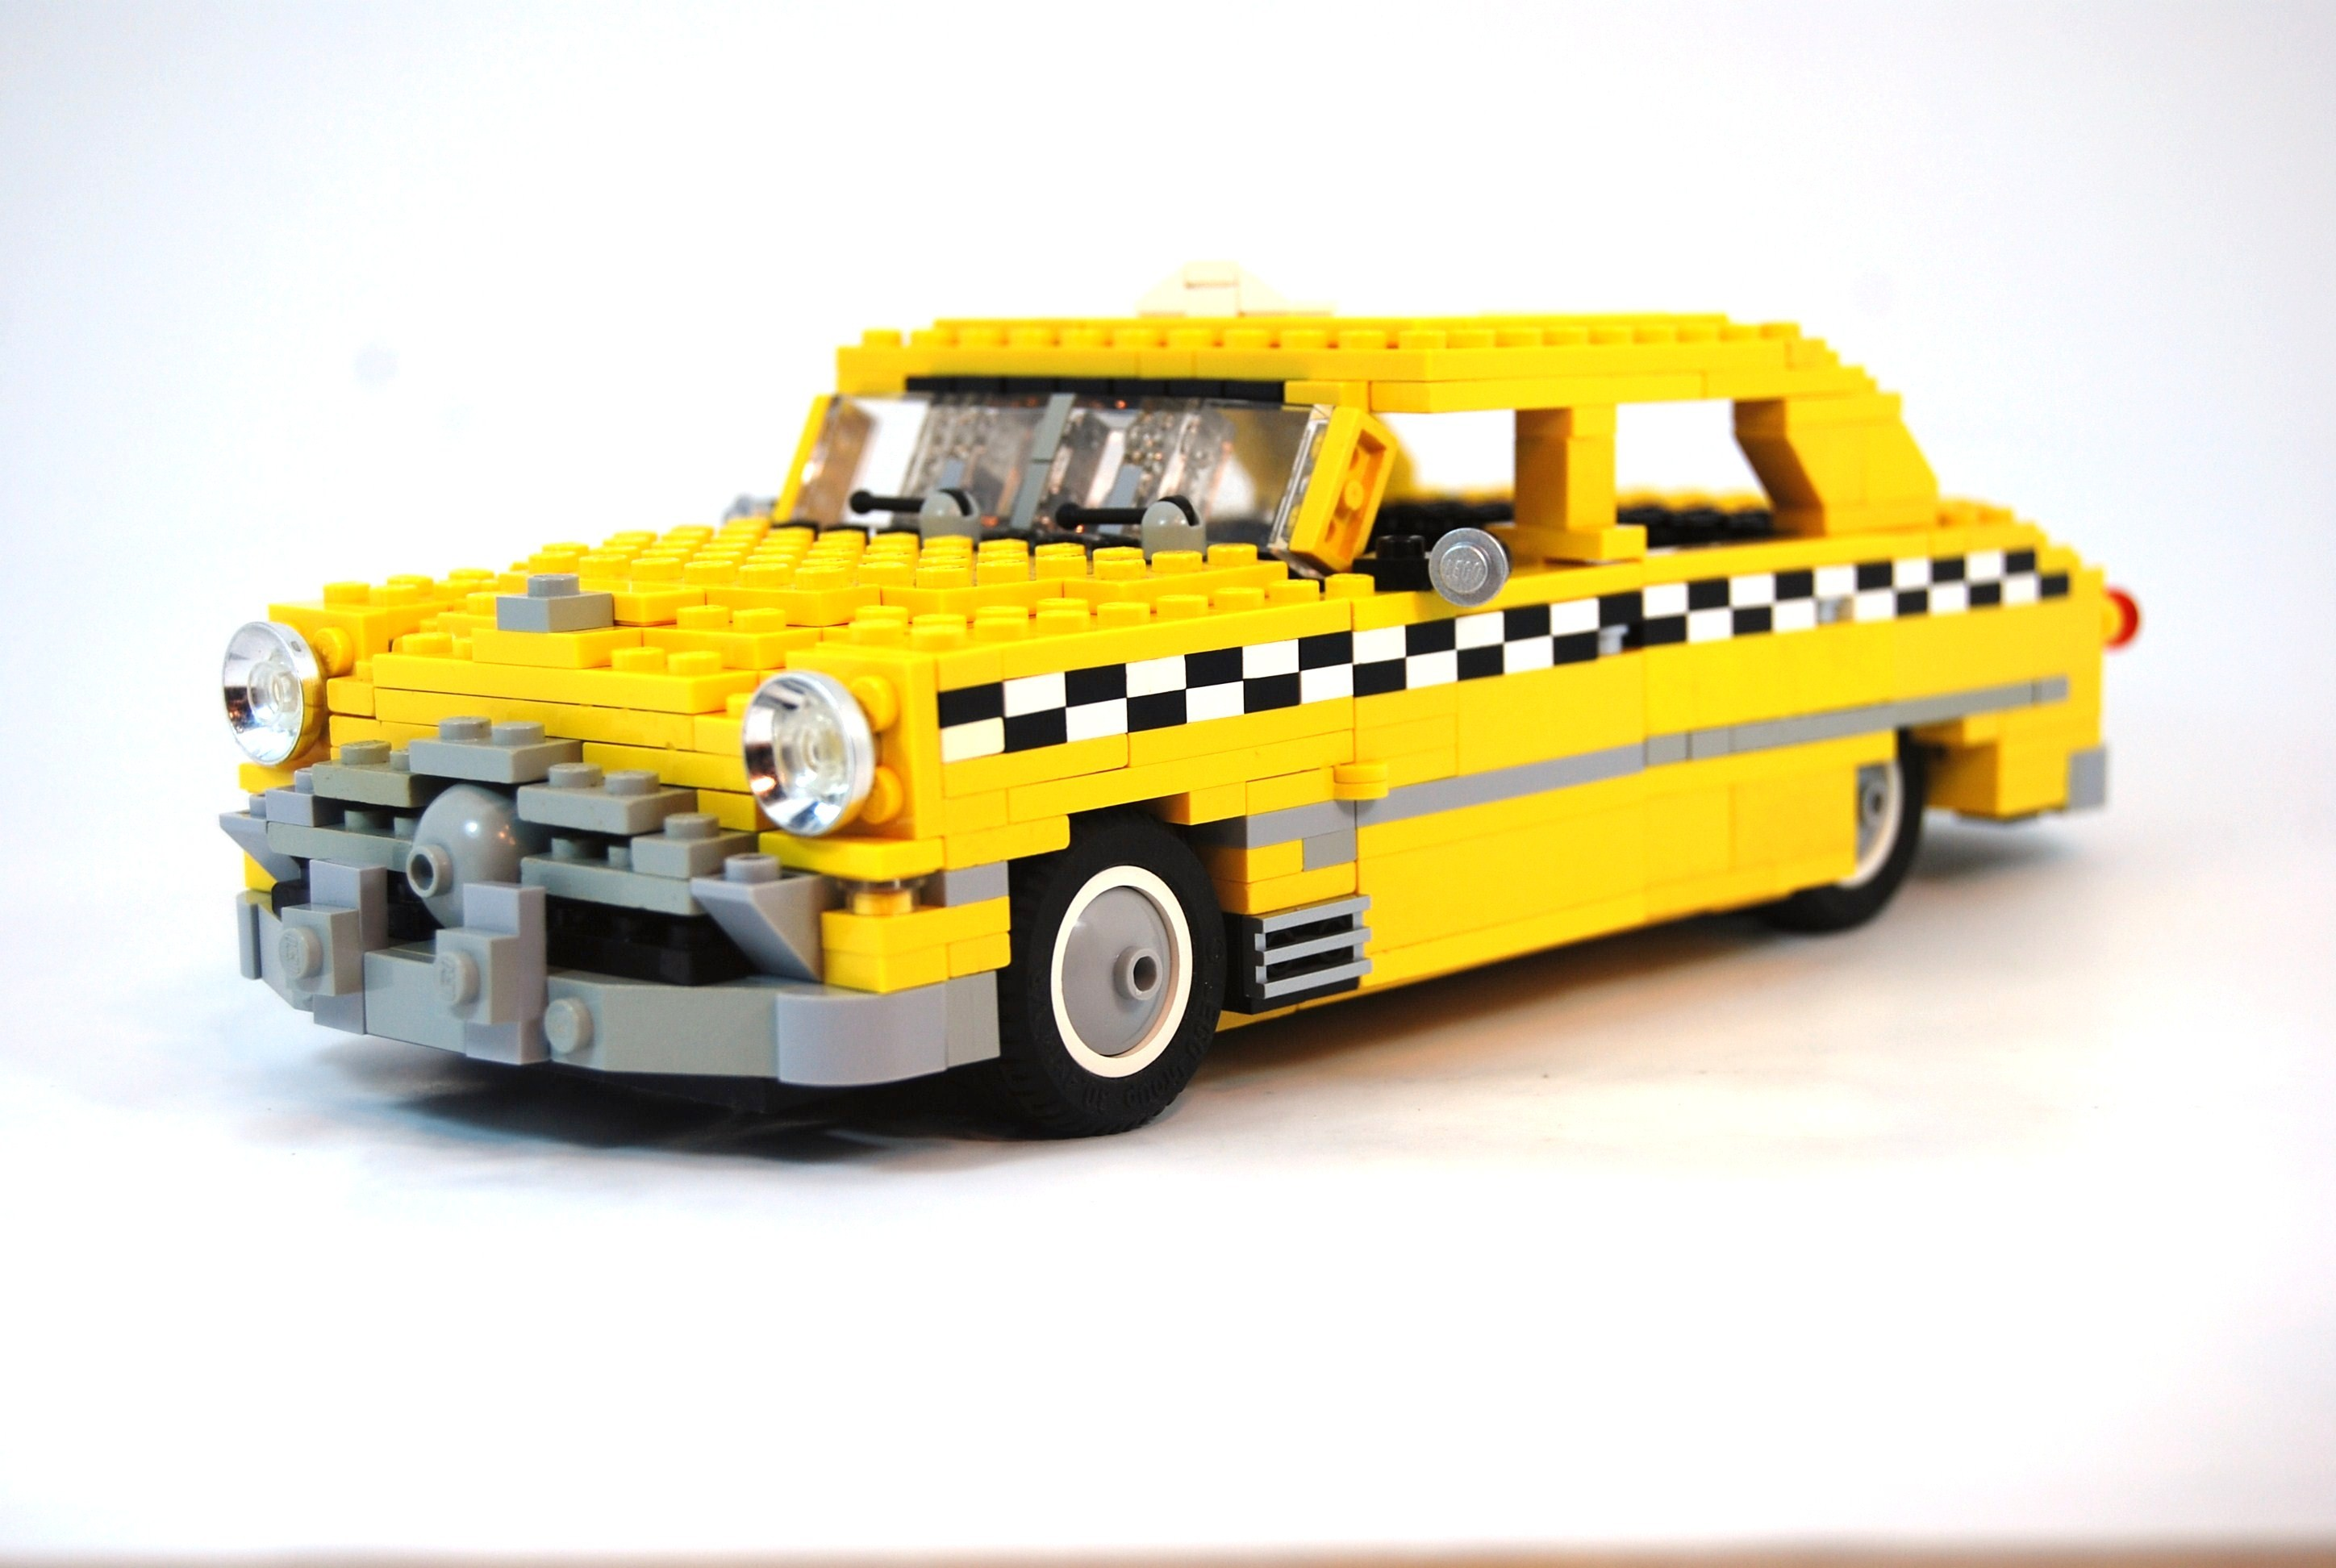 3840x1080 Wallpaper Classic Car Car Taxi White Background Lego Yellow Cars Checkered